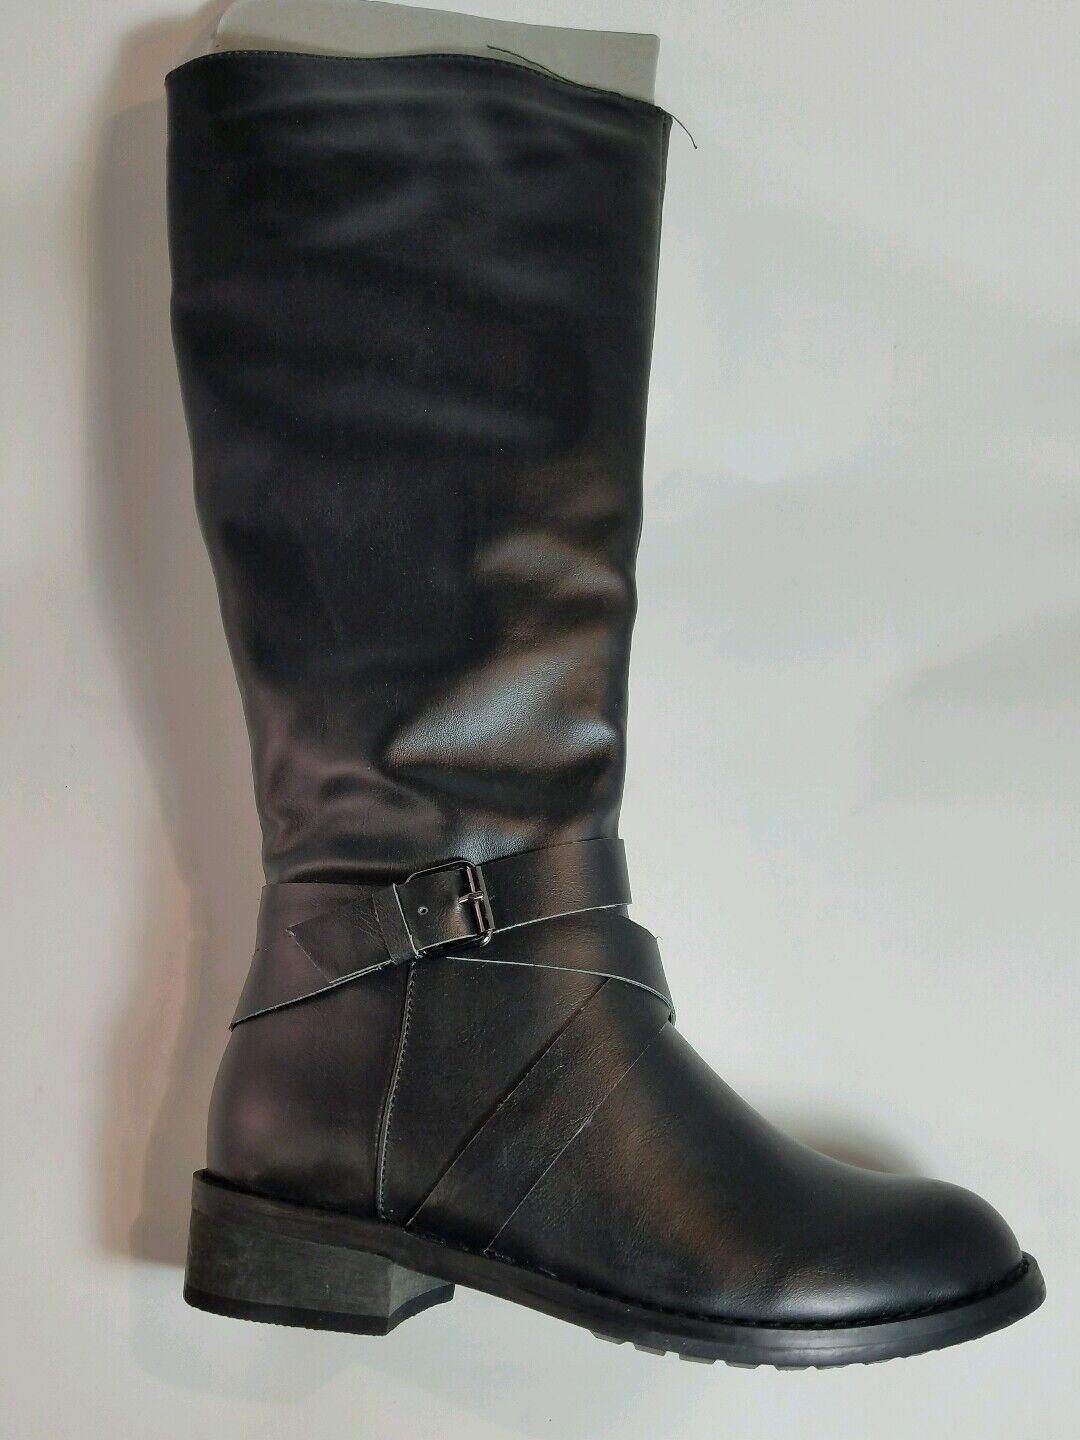 Bucco Capensis Venita Black Women's Riding Boot SIZE 6.5 BOX IS DISTRESSED